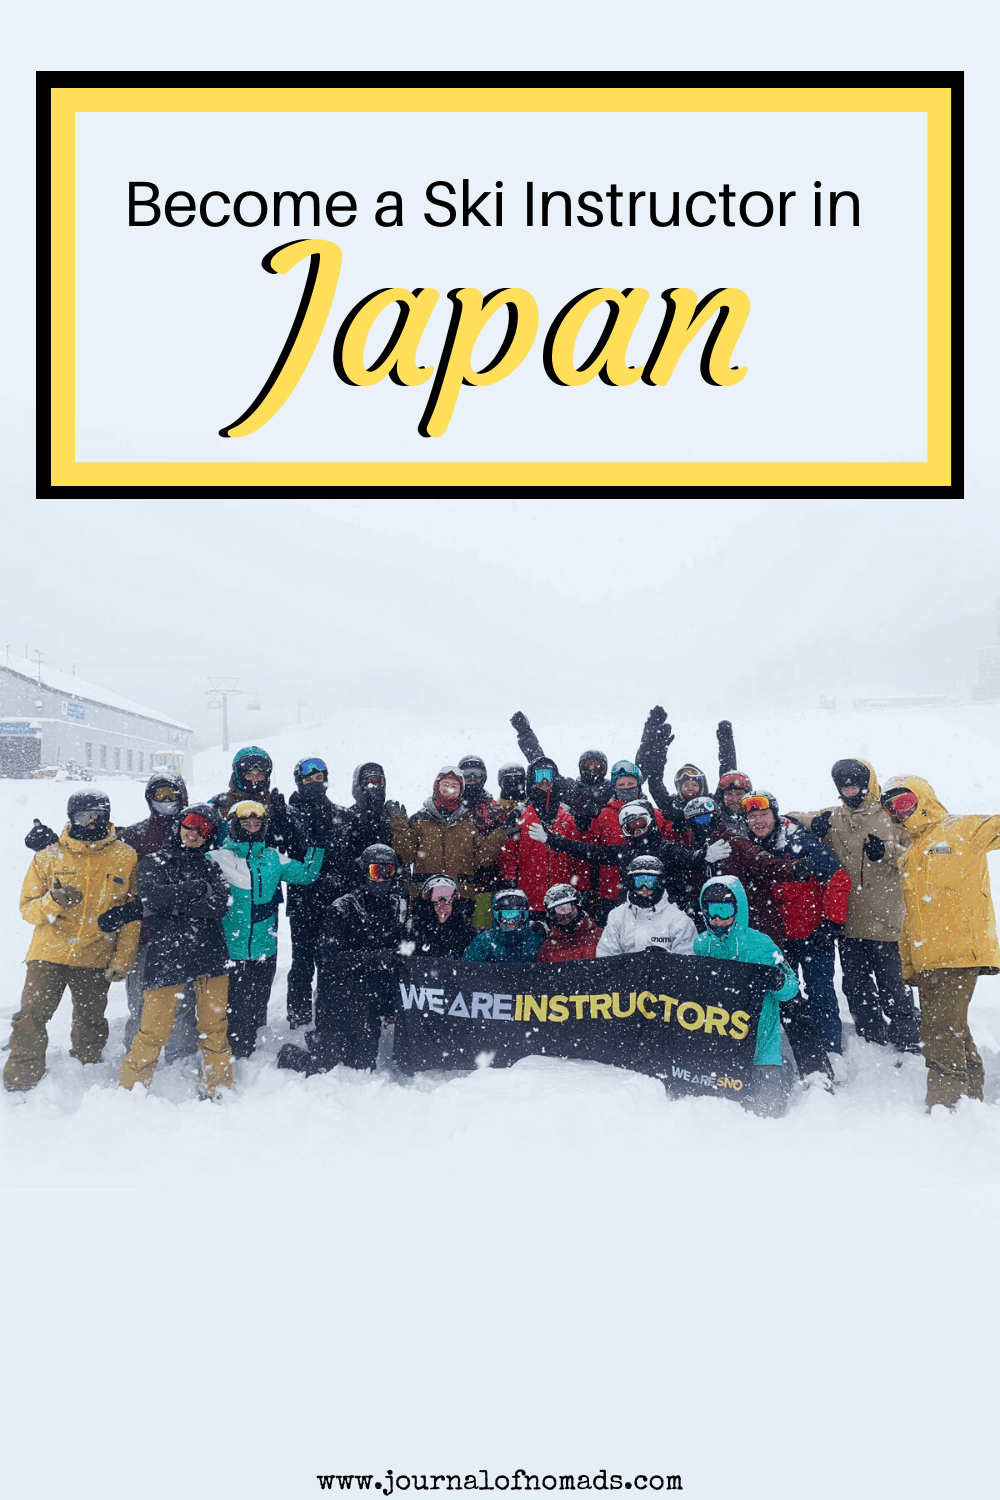 A New Way to Travel Becoming a Ski Instructor in Japan